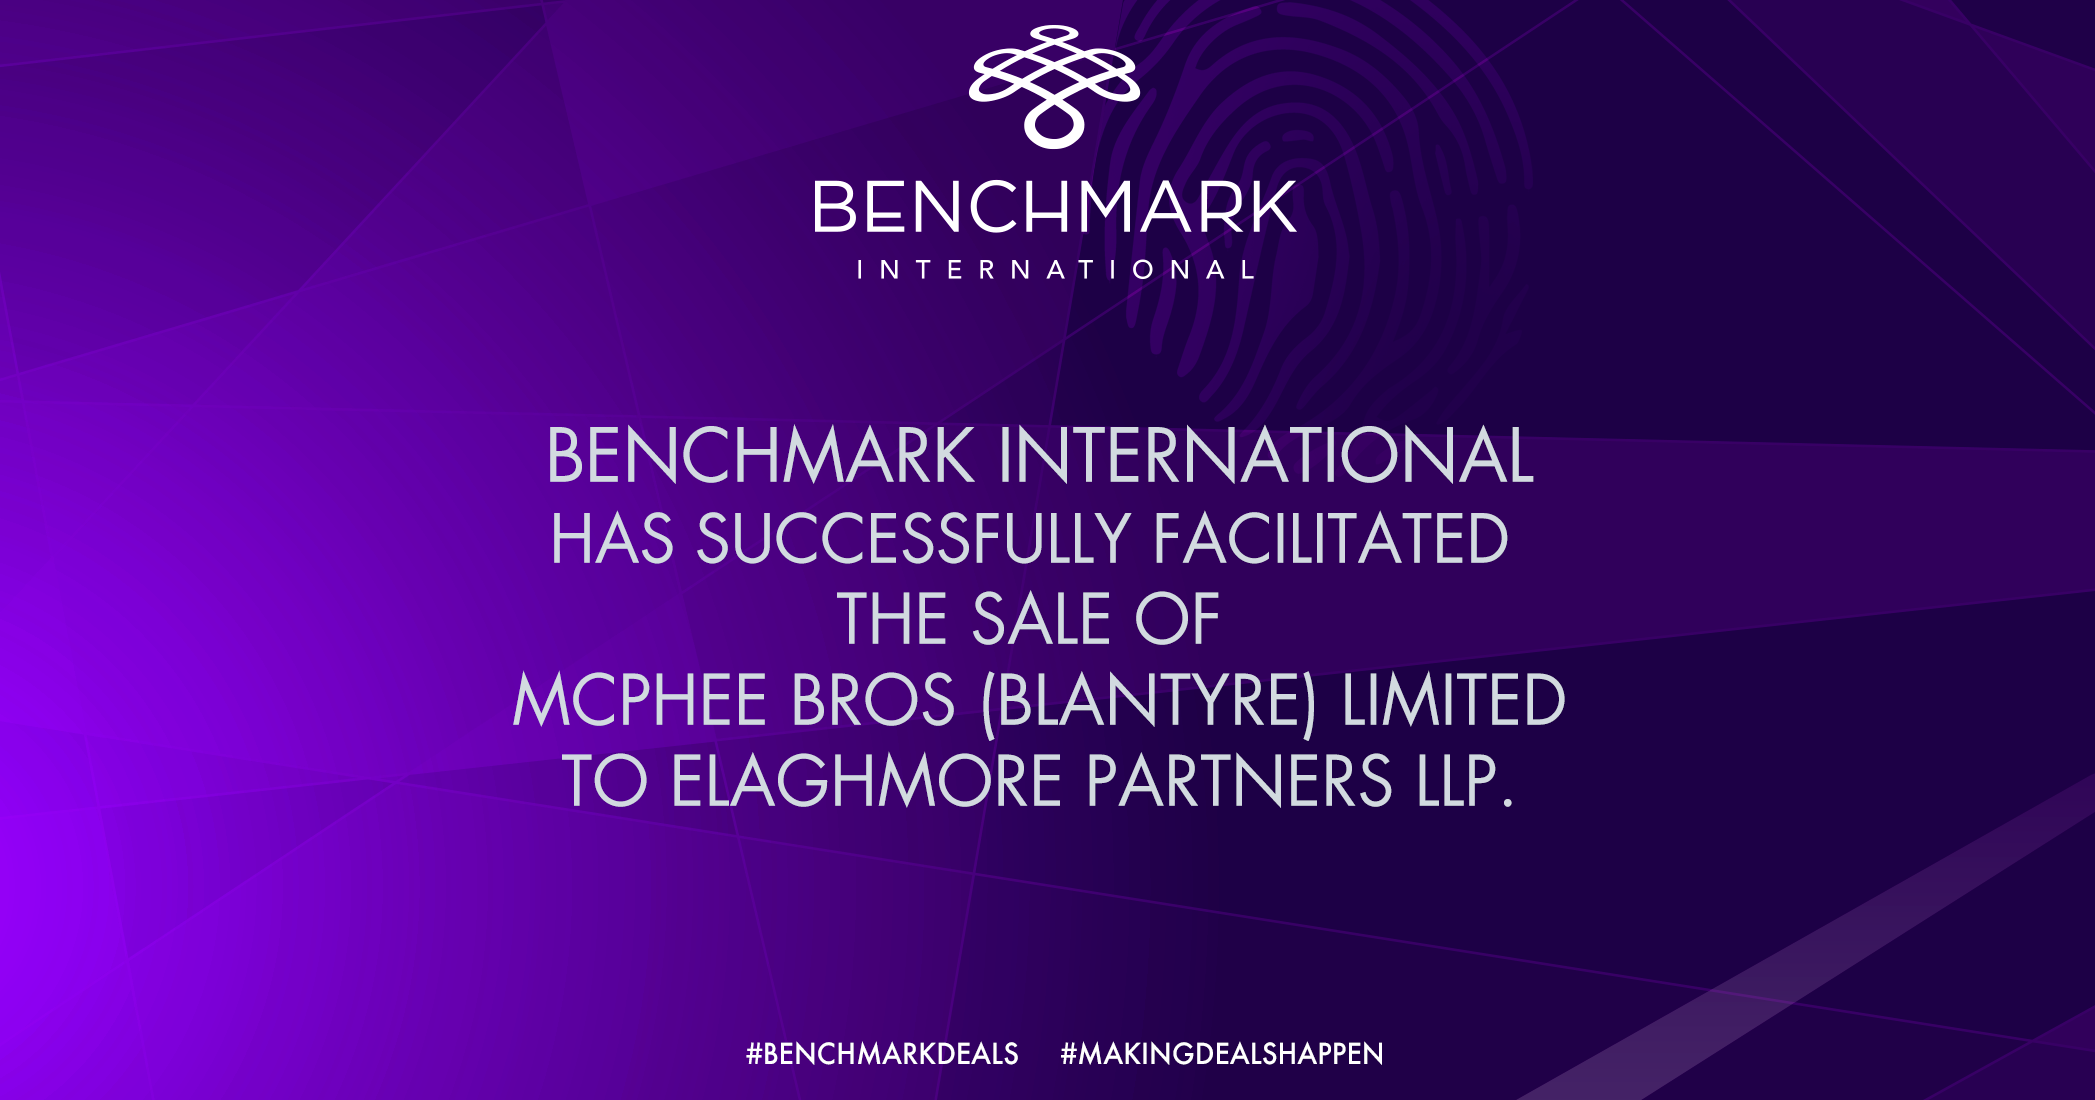 Benchmark International Advises on the Sale of McPhee Bros (Blantyre) Limited to Elaghmore Partners LLP